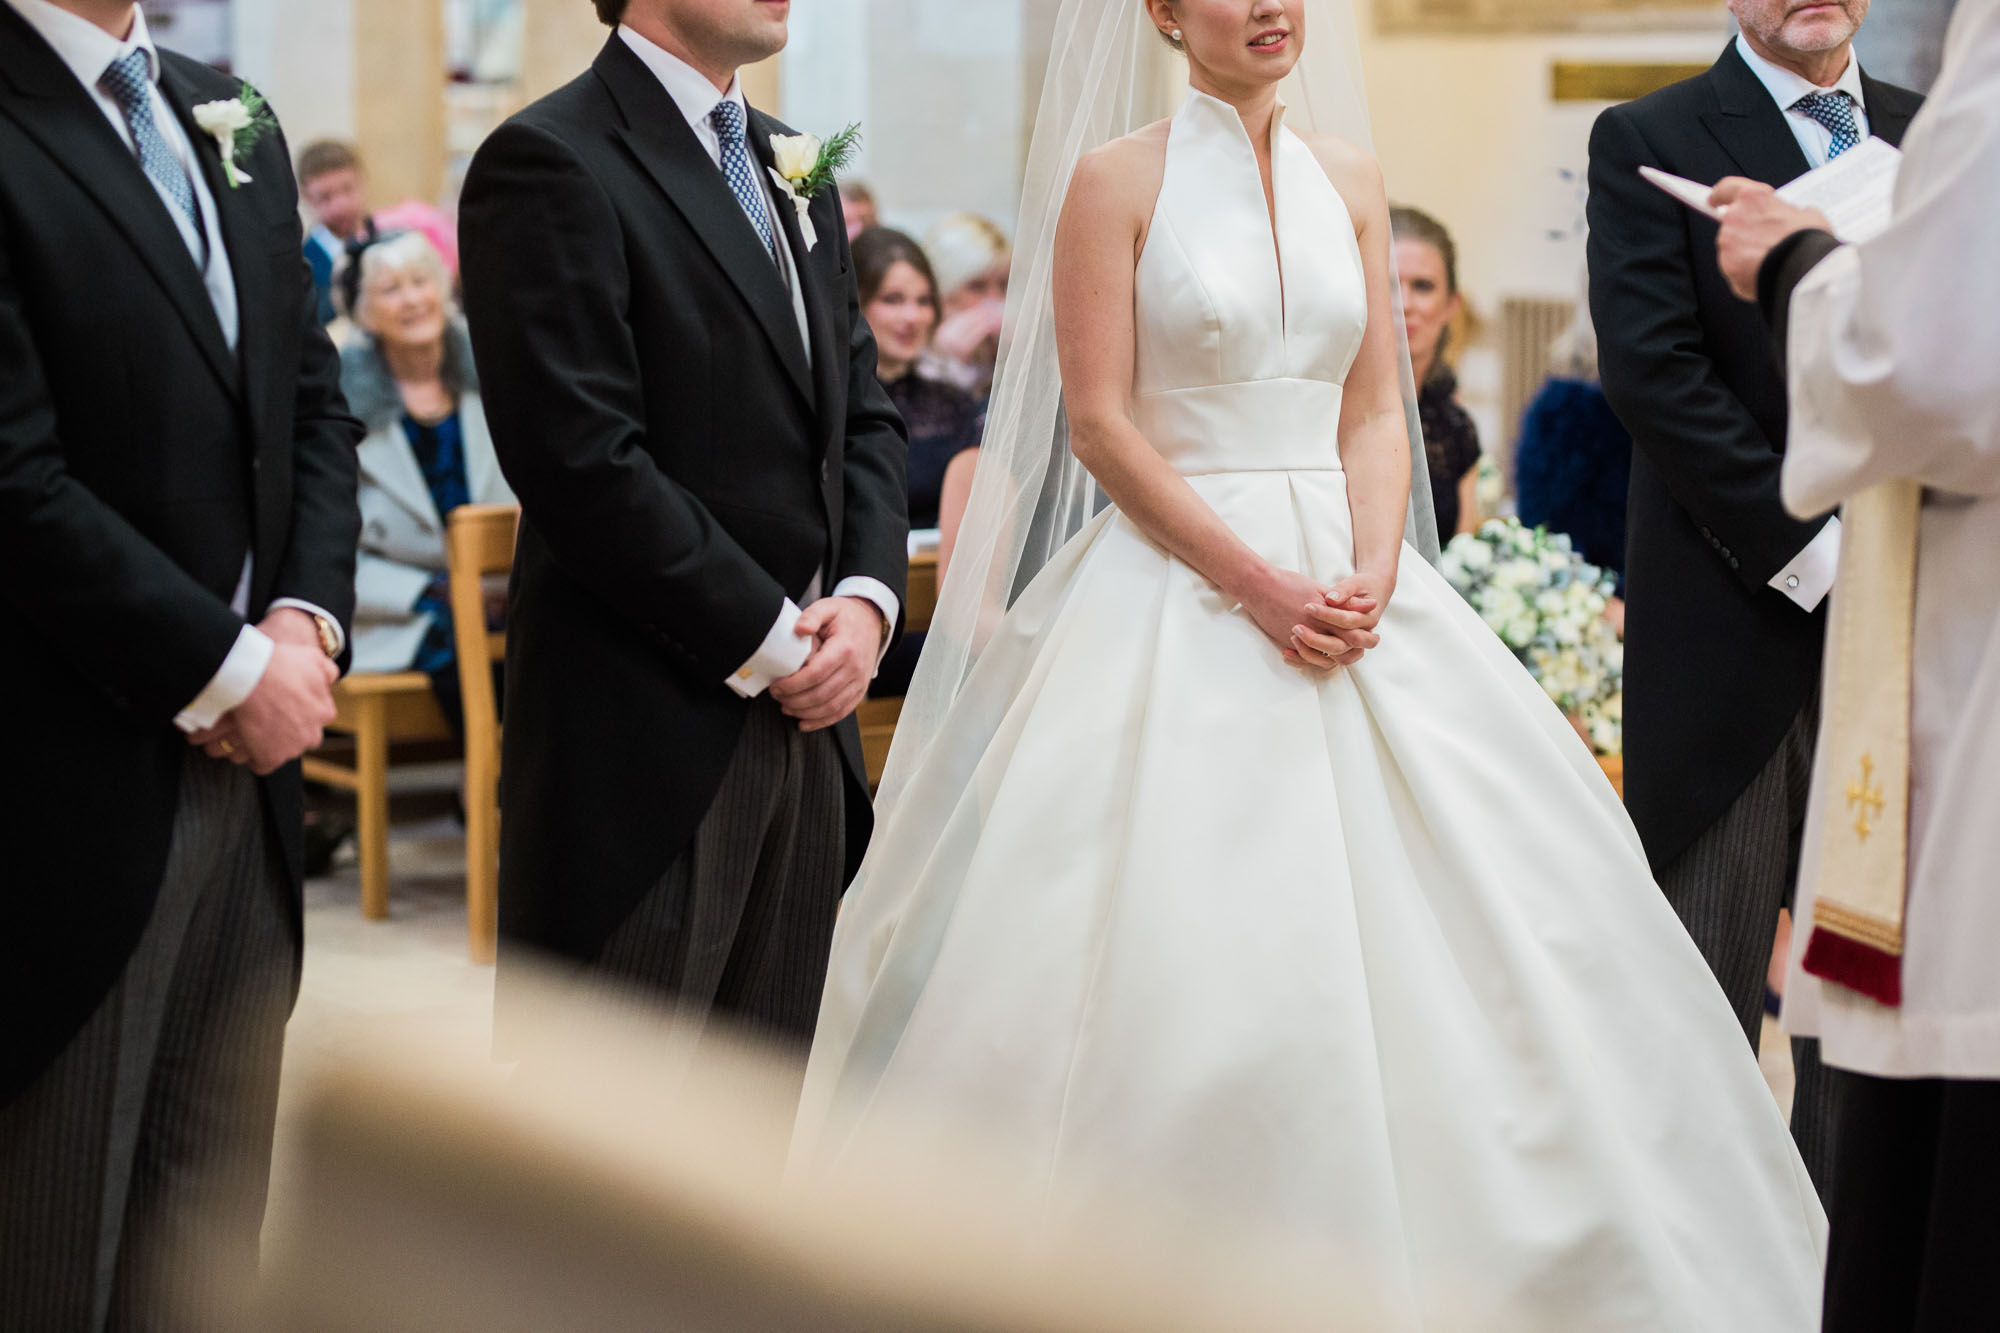 Bride and groom standing at the alter of Boxgrove Priory